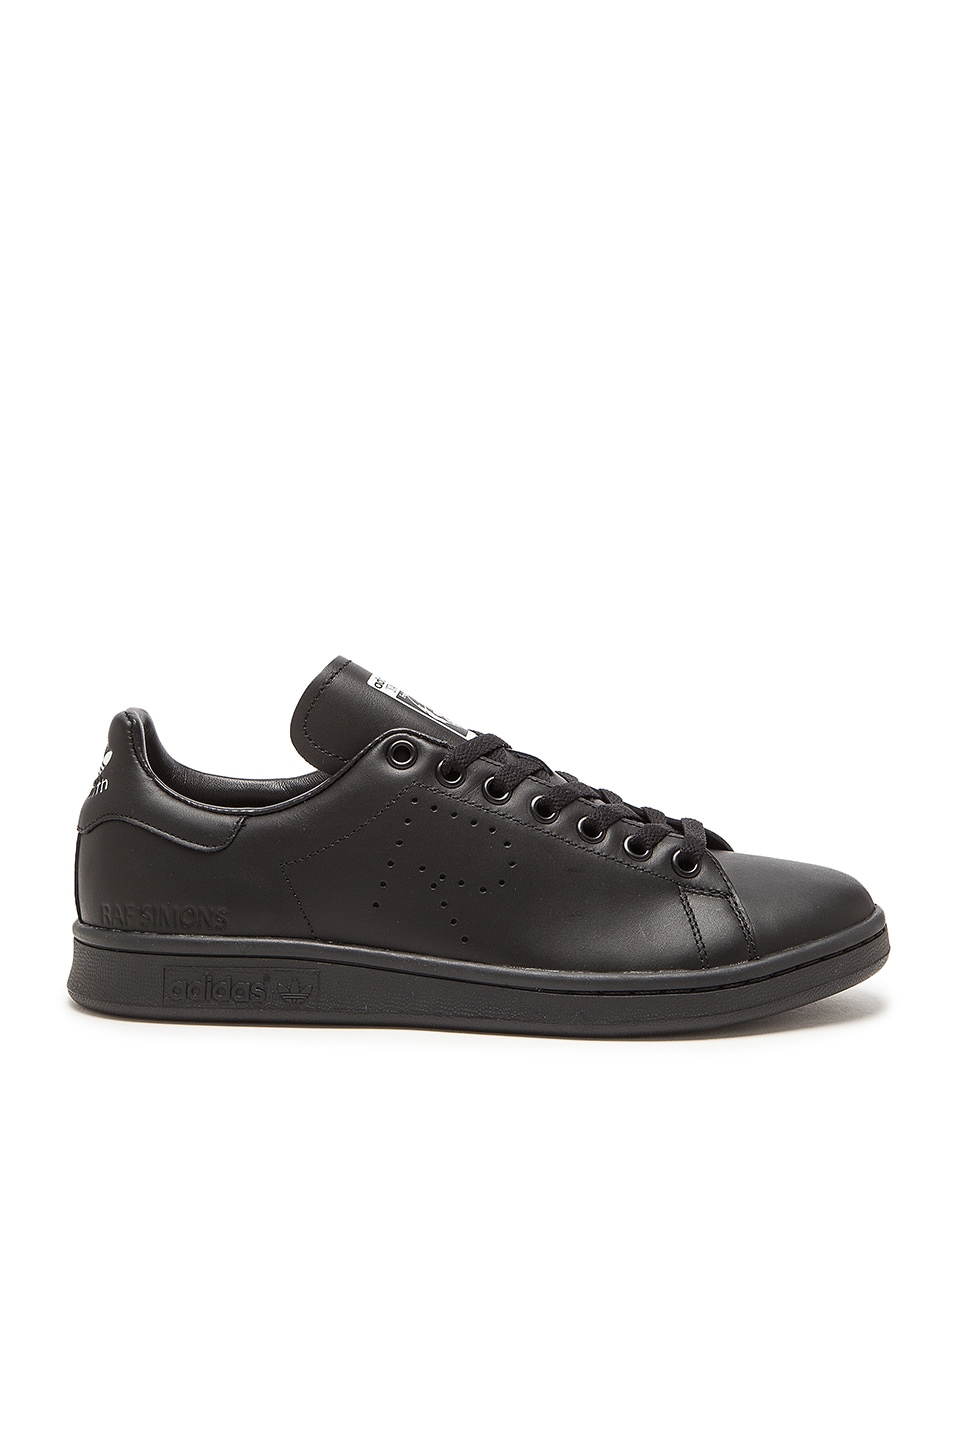 adidas by Raf Simons Stan Smith in Core Black FTWR White Core Black